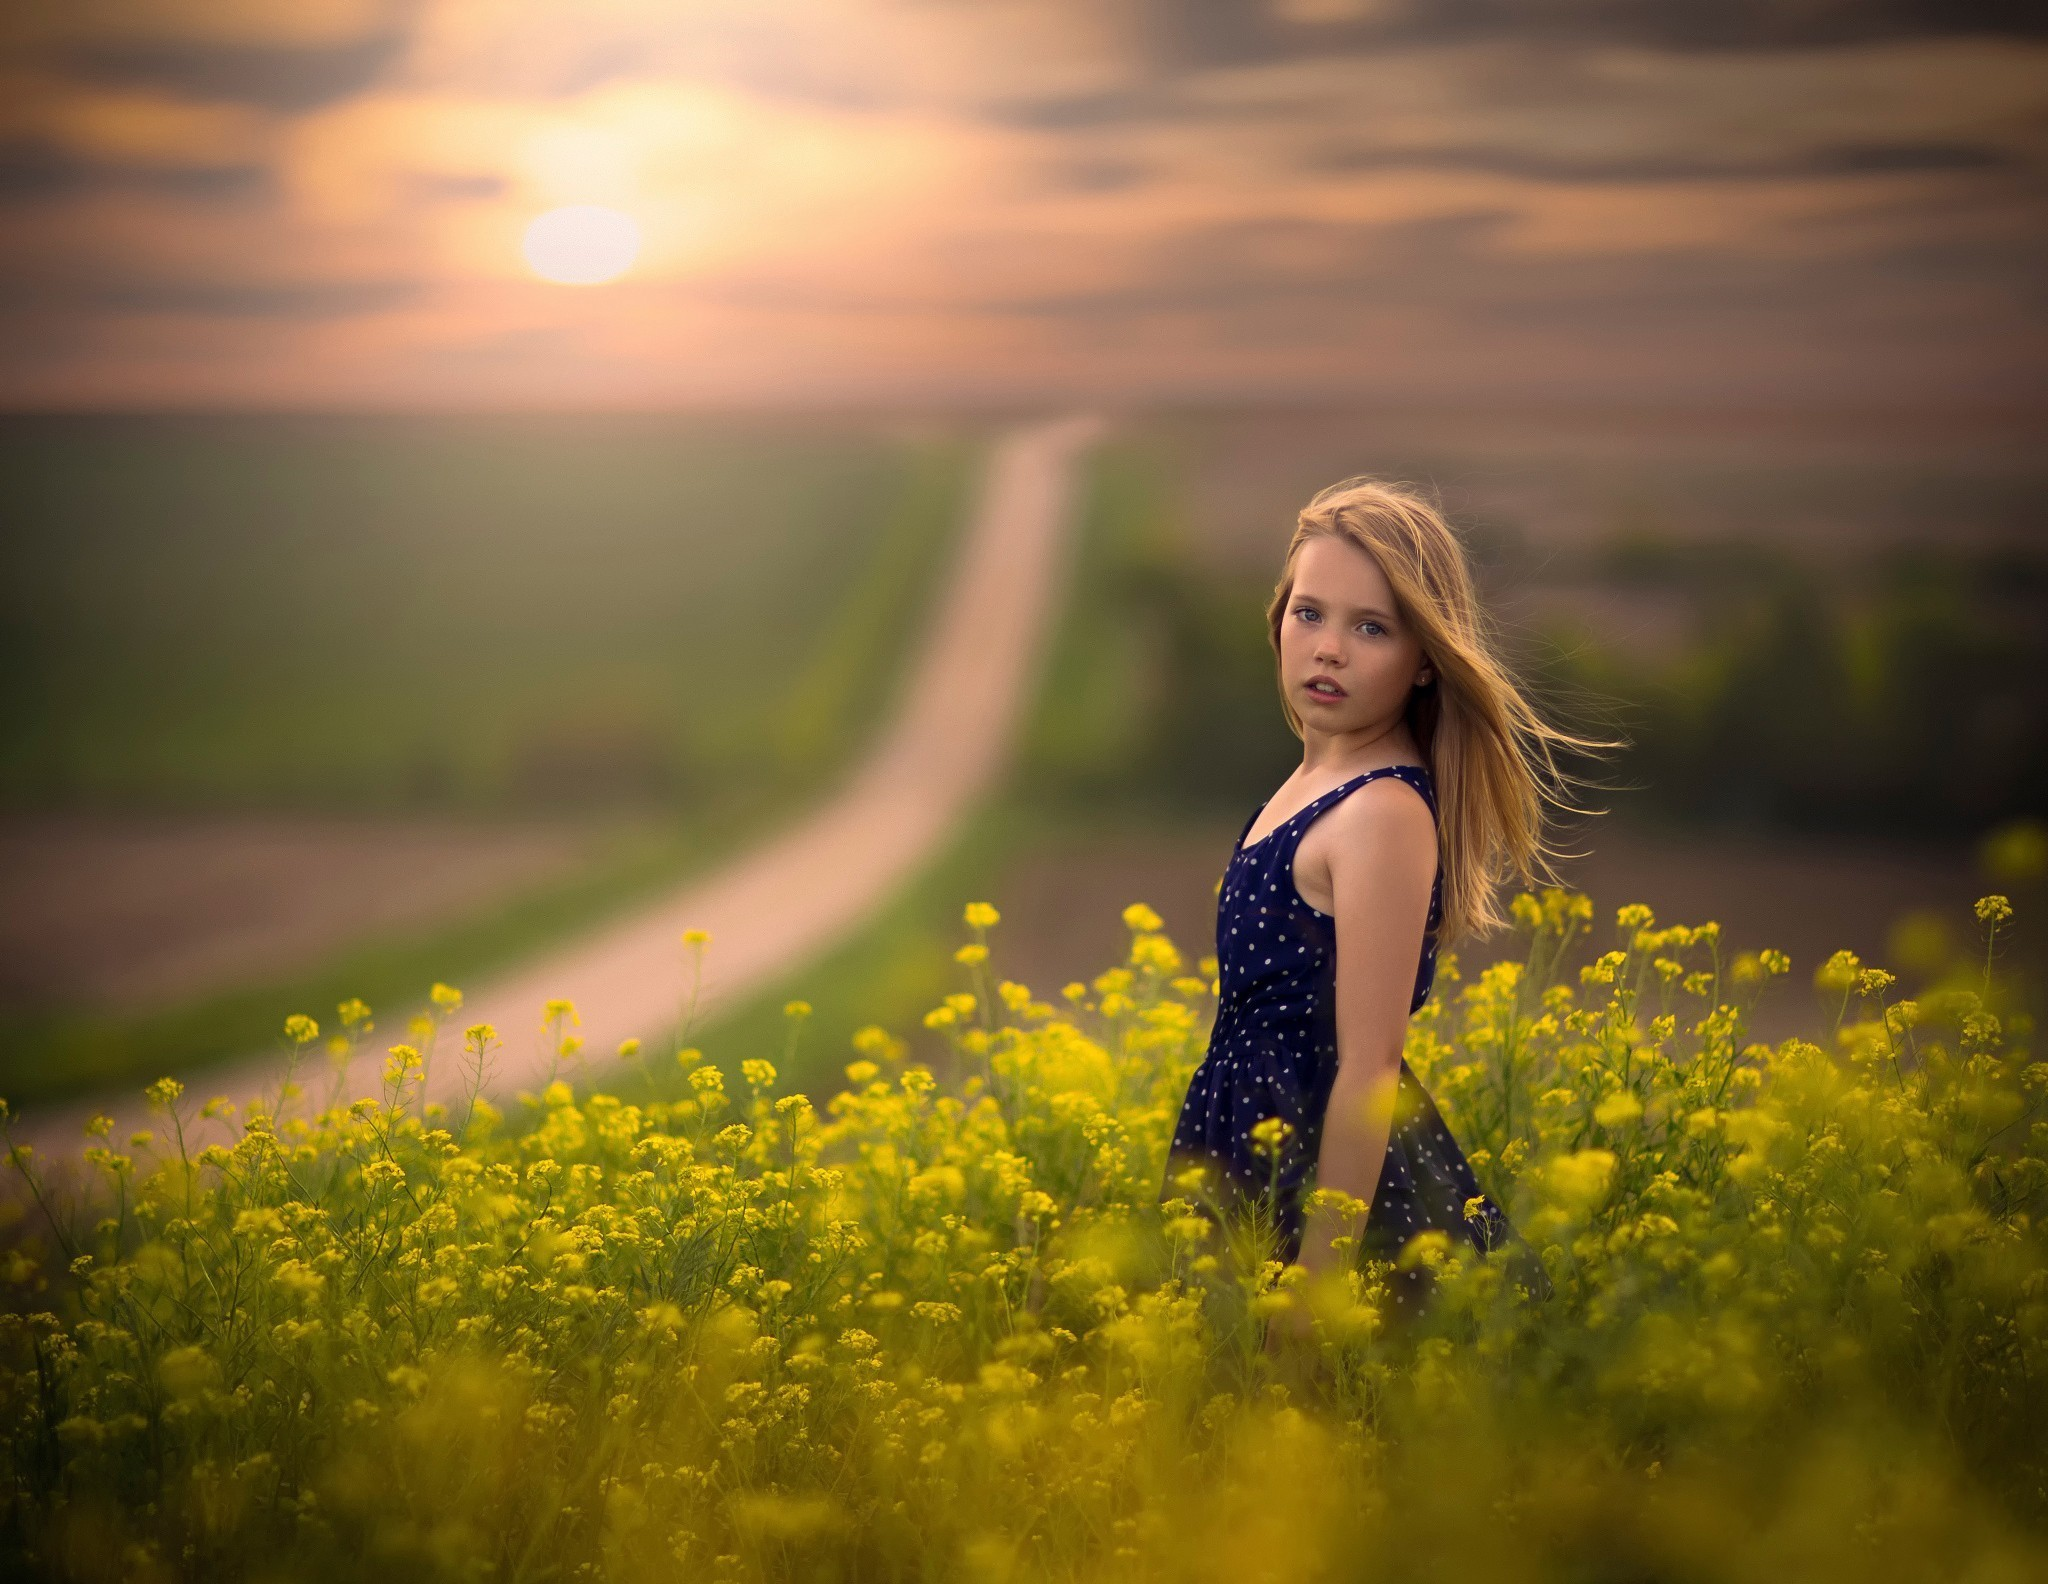 open mouth jake olson yellow flowers polka dots flowers children path sunlight depth of field looking at viewer blonde